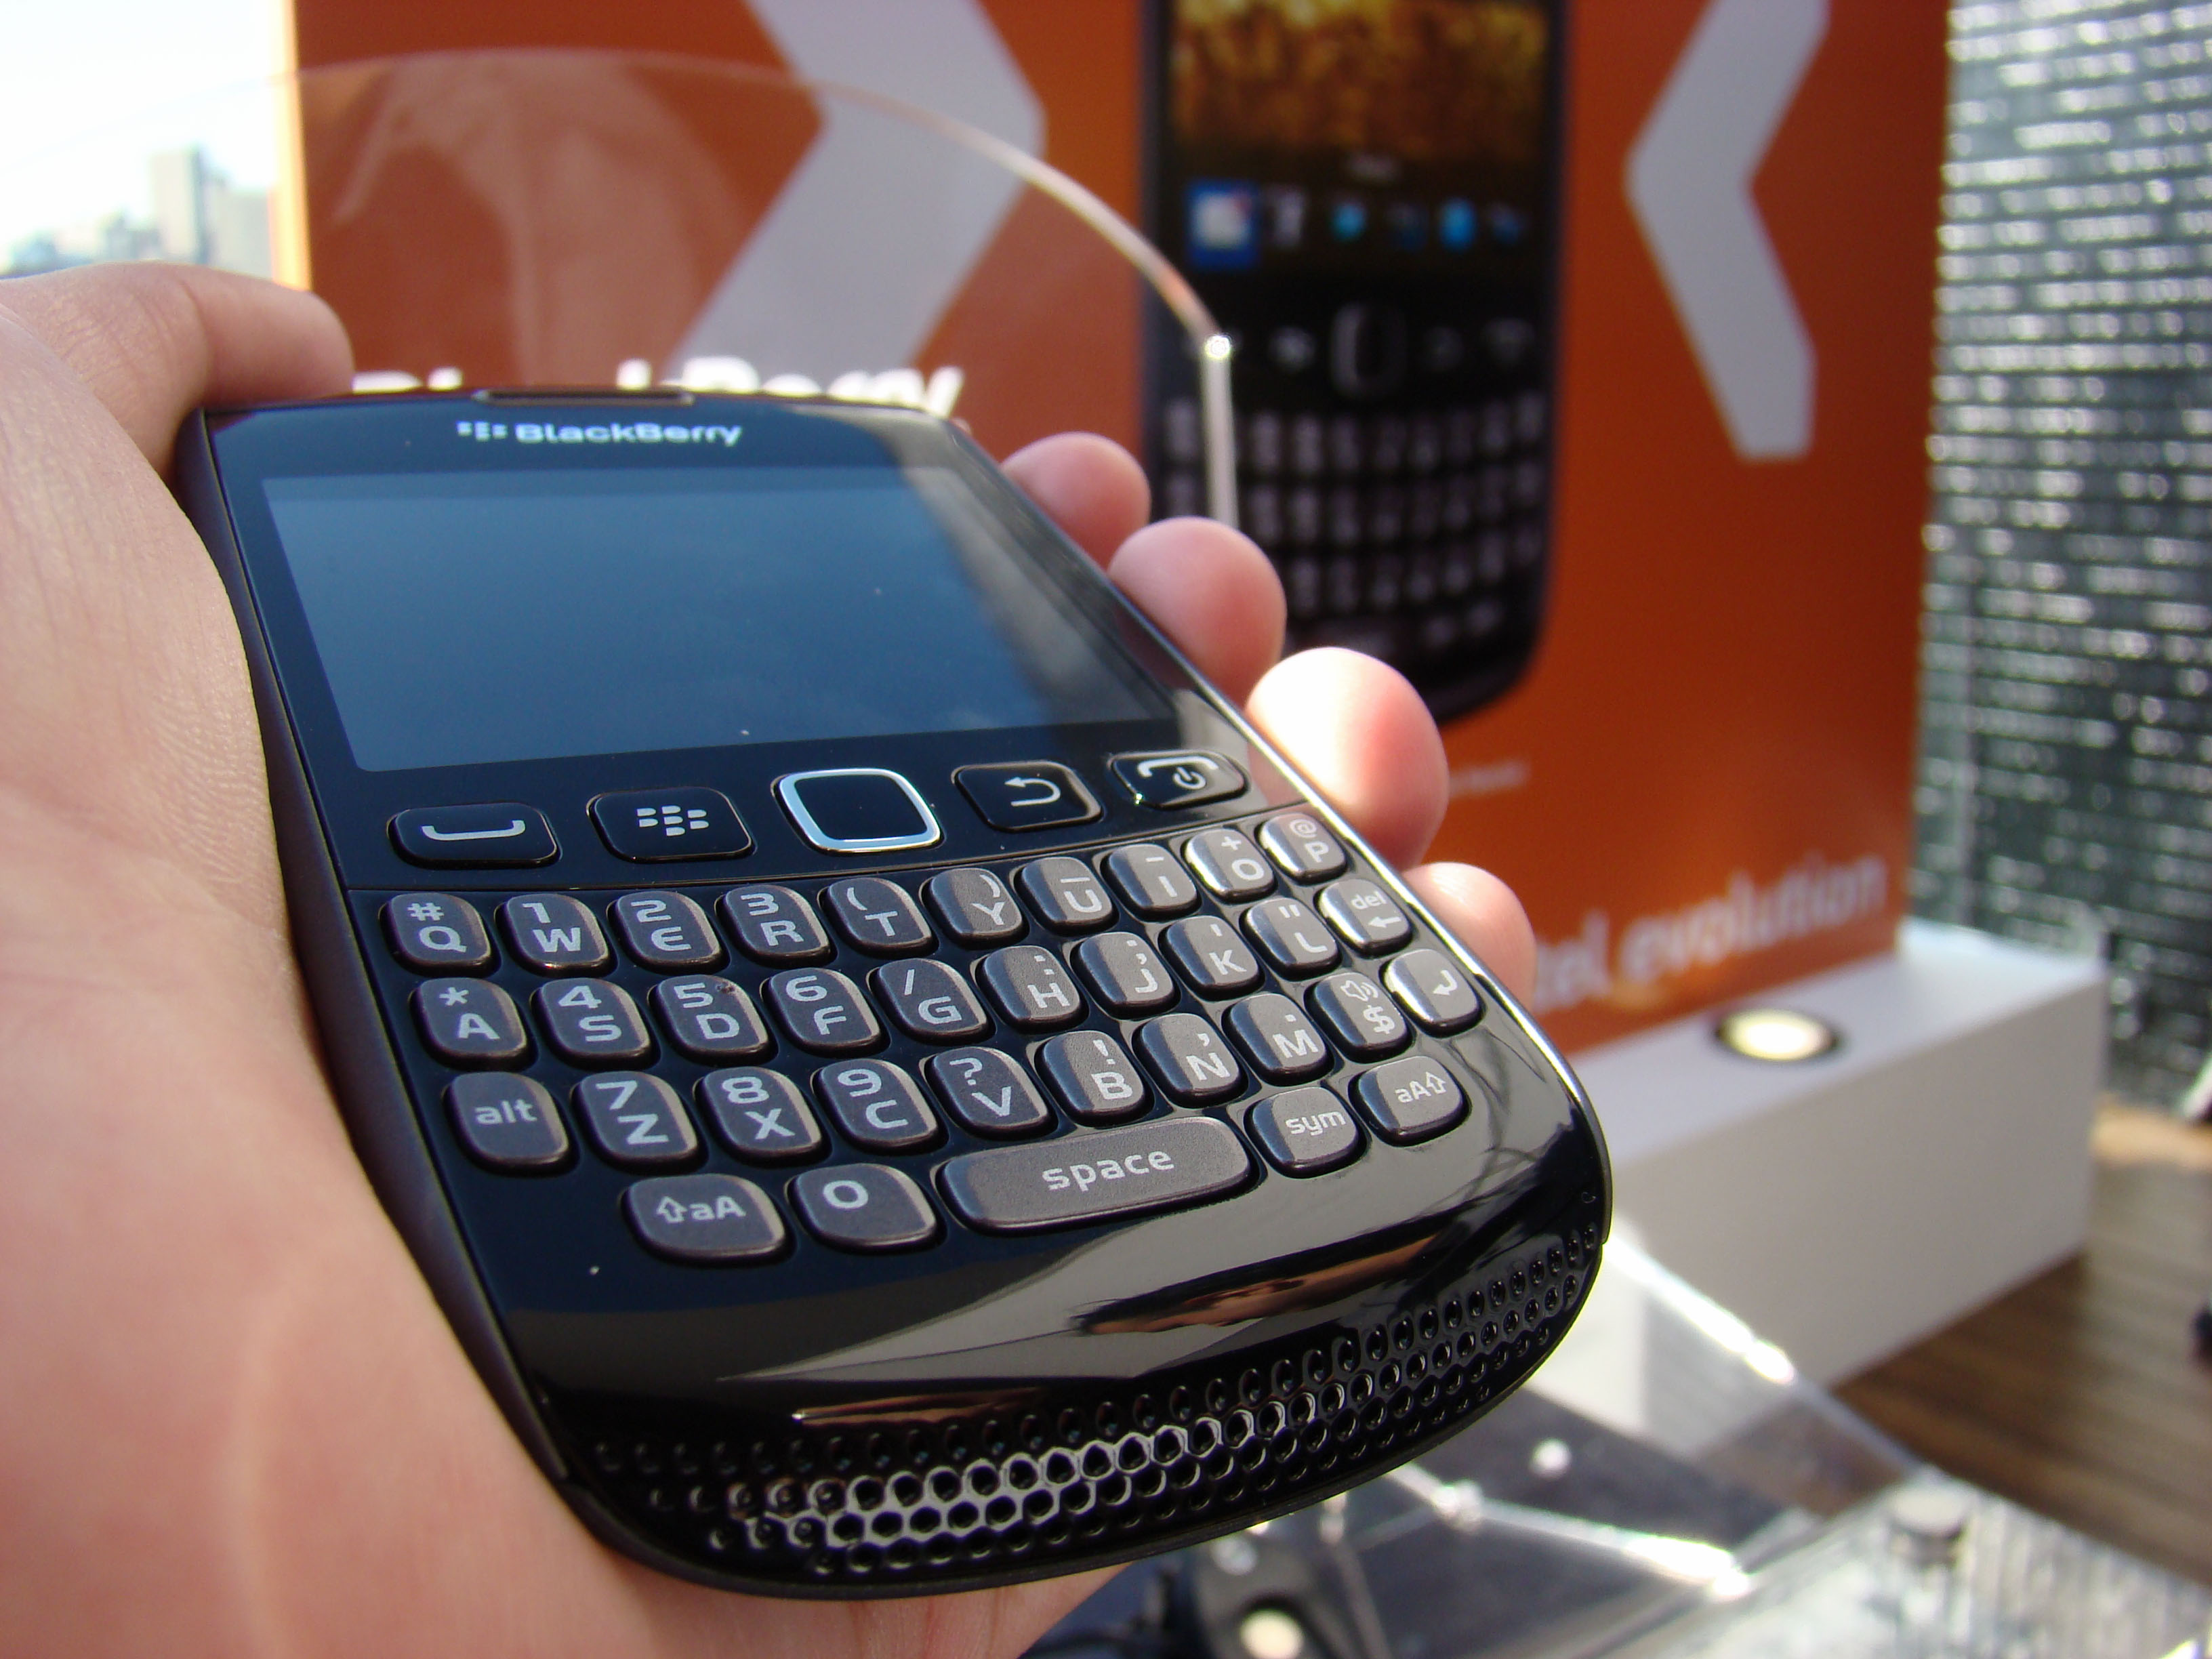 blackberry-nextel-6